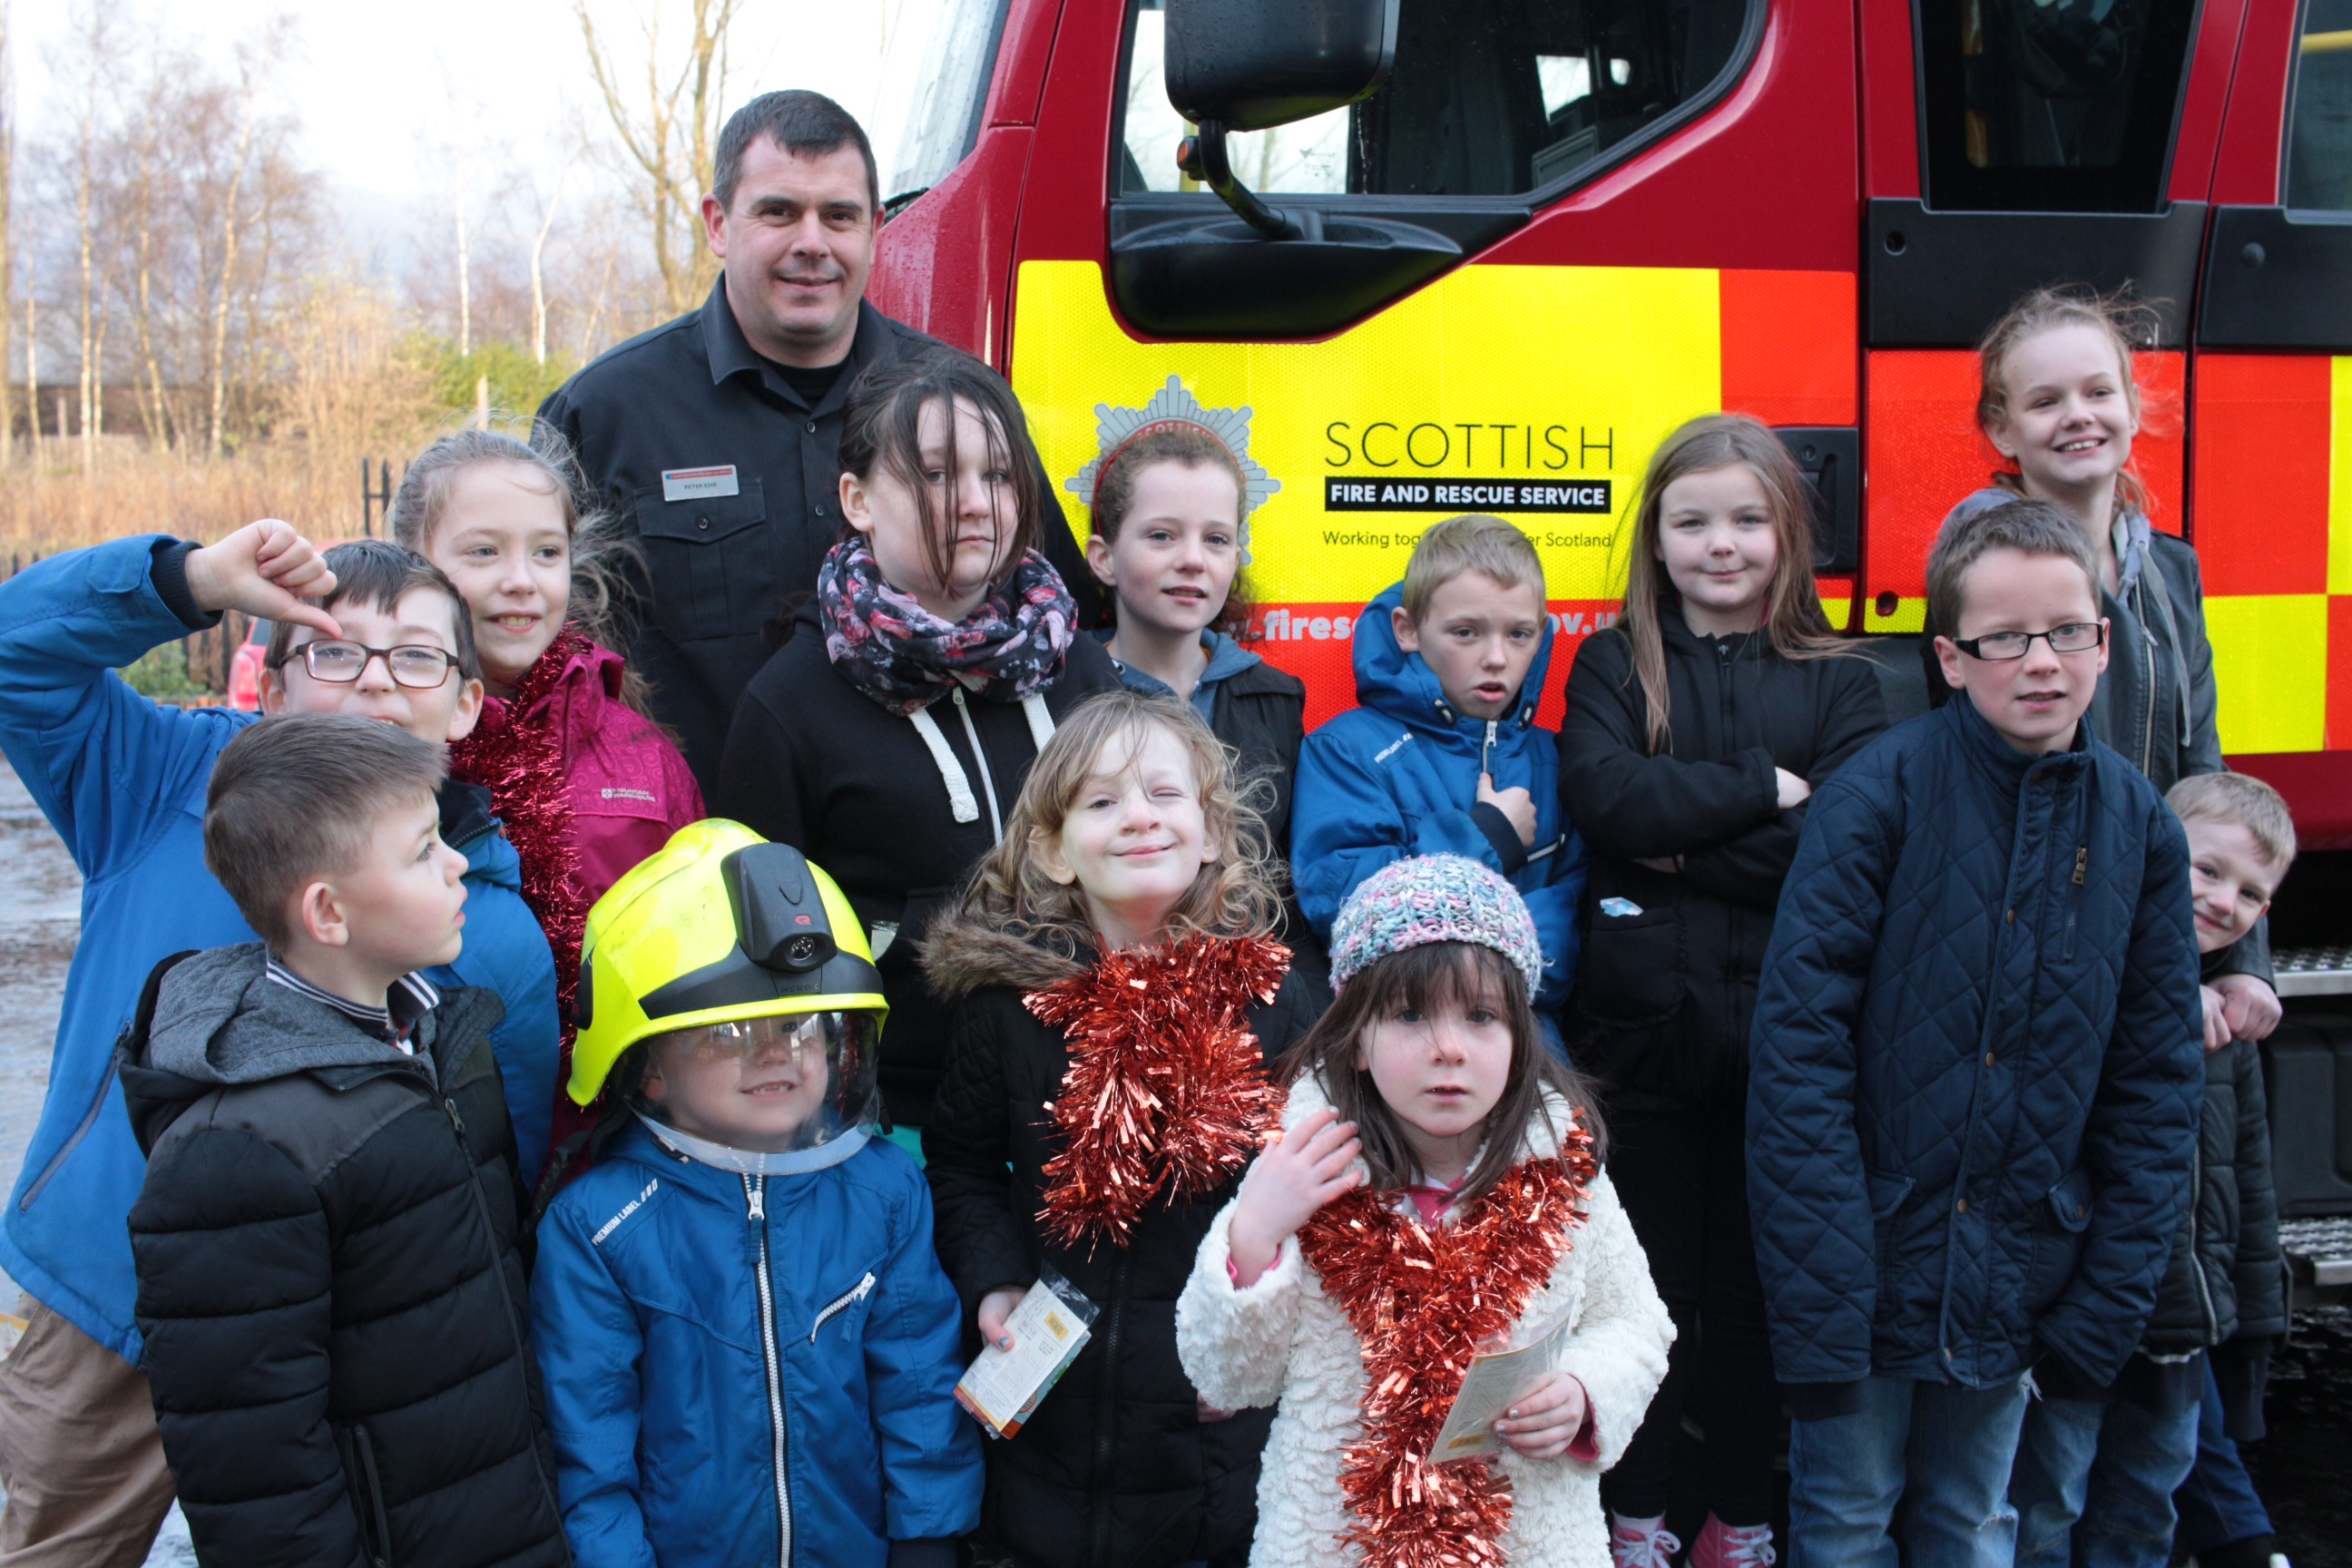 Local groups from Alloa help promote fire safety in the town's Hawkhill area